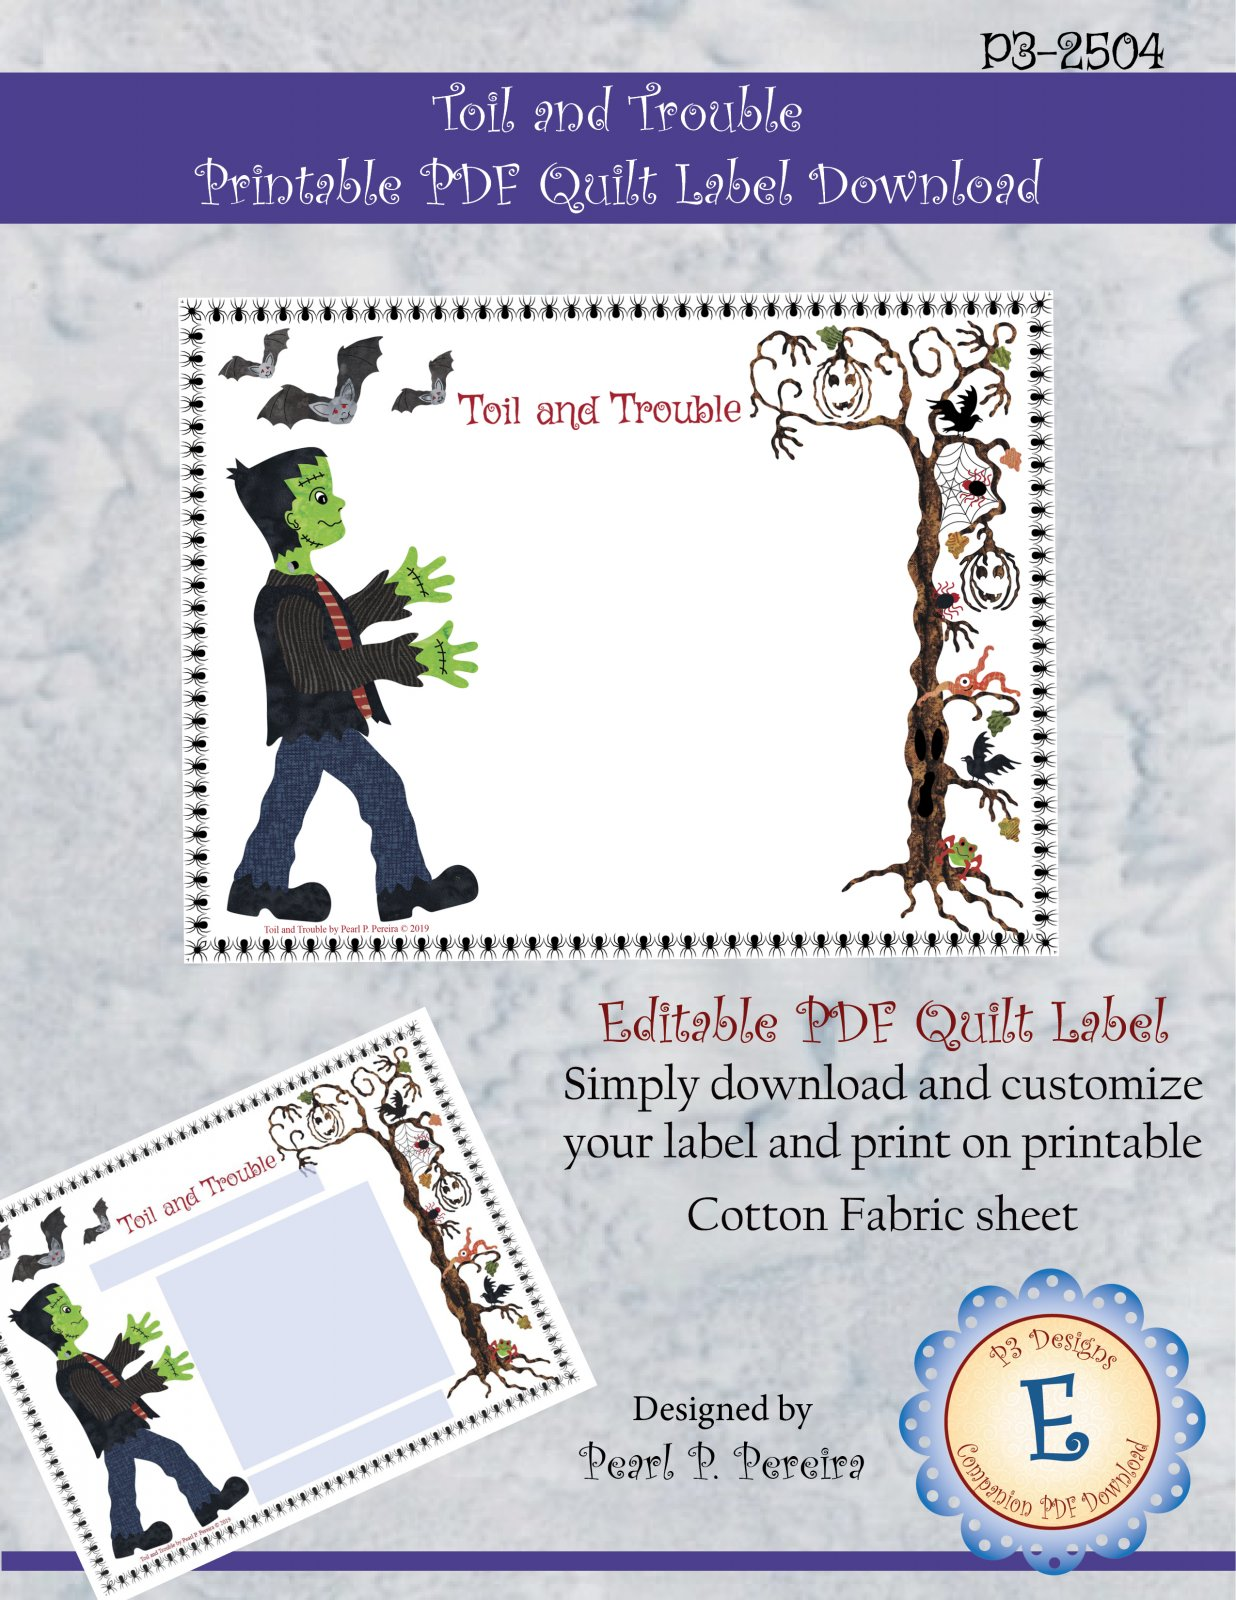 P3-2504 Toil and Trouble - Printable Quilt Label PDF Download